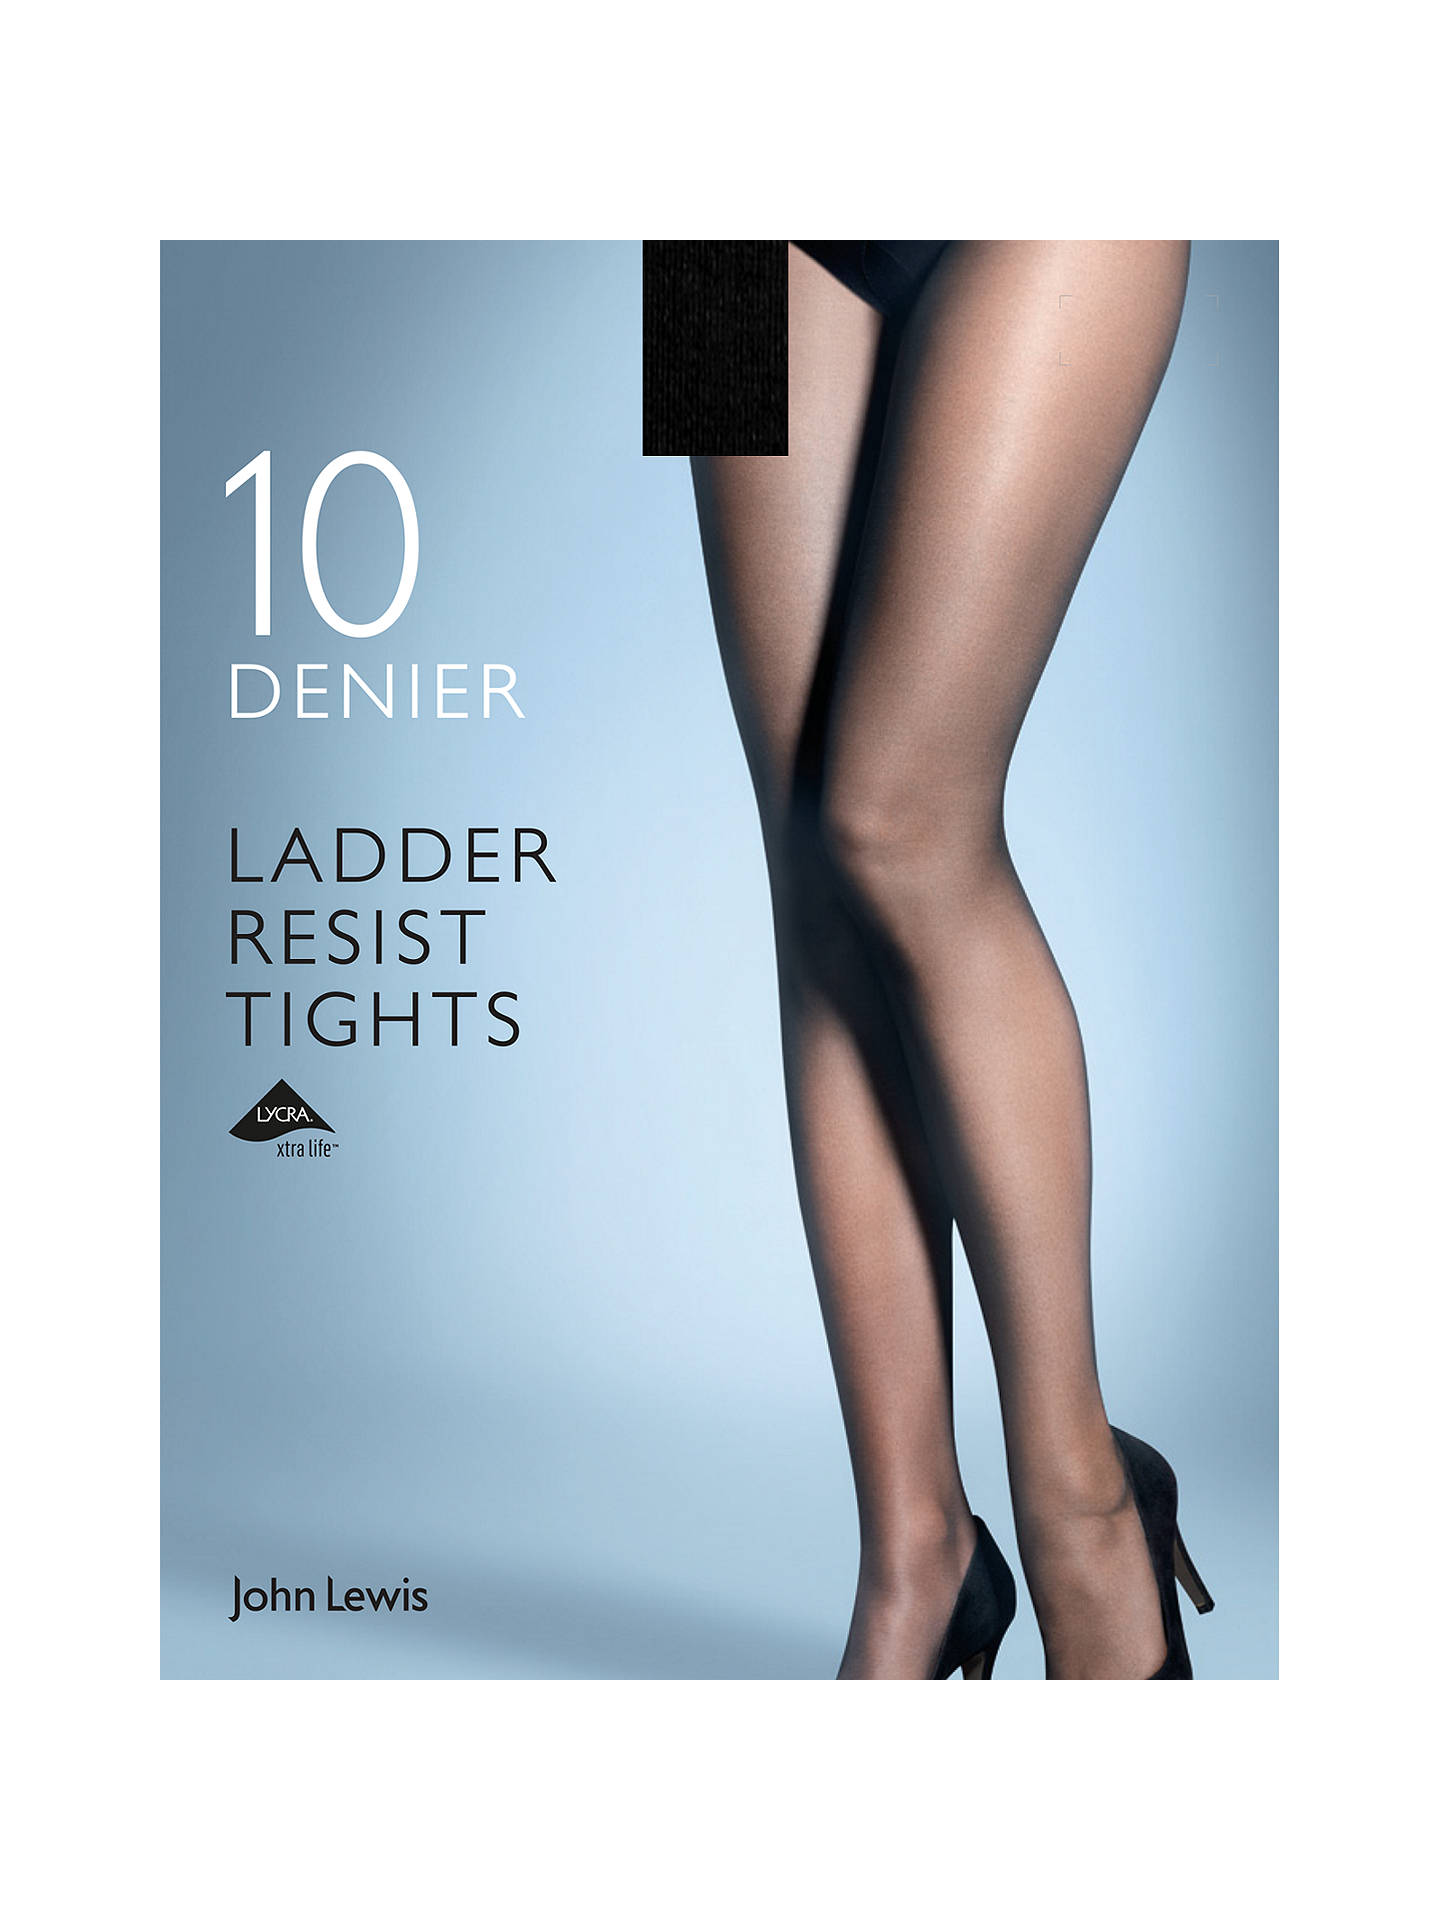 3b178eb9a2083 Buy John Lewis & Partners 10 Denier Smooth Ladder Resist Tights, Pack of 1,